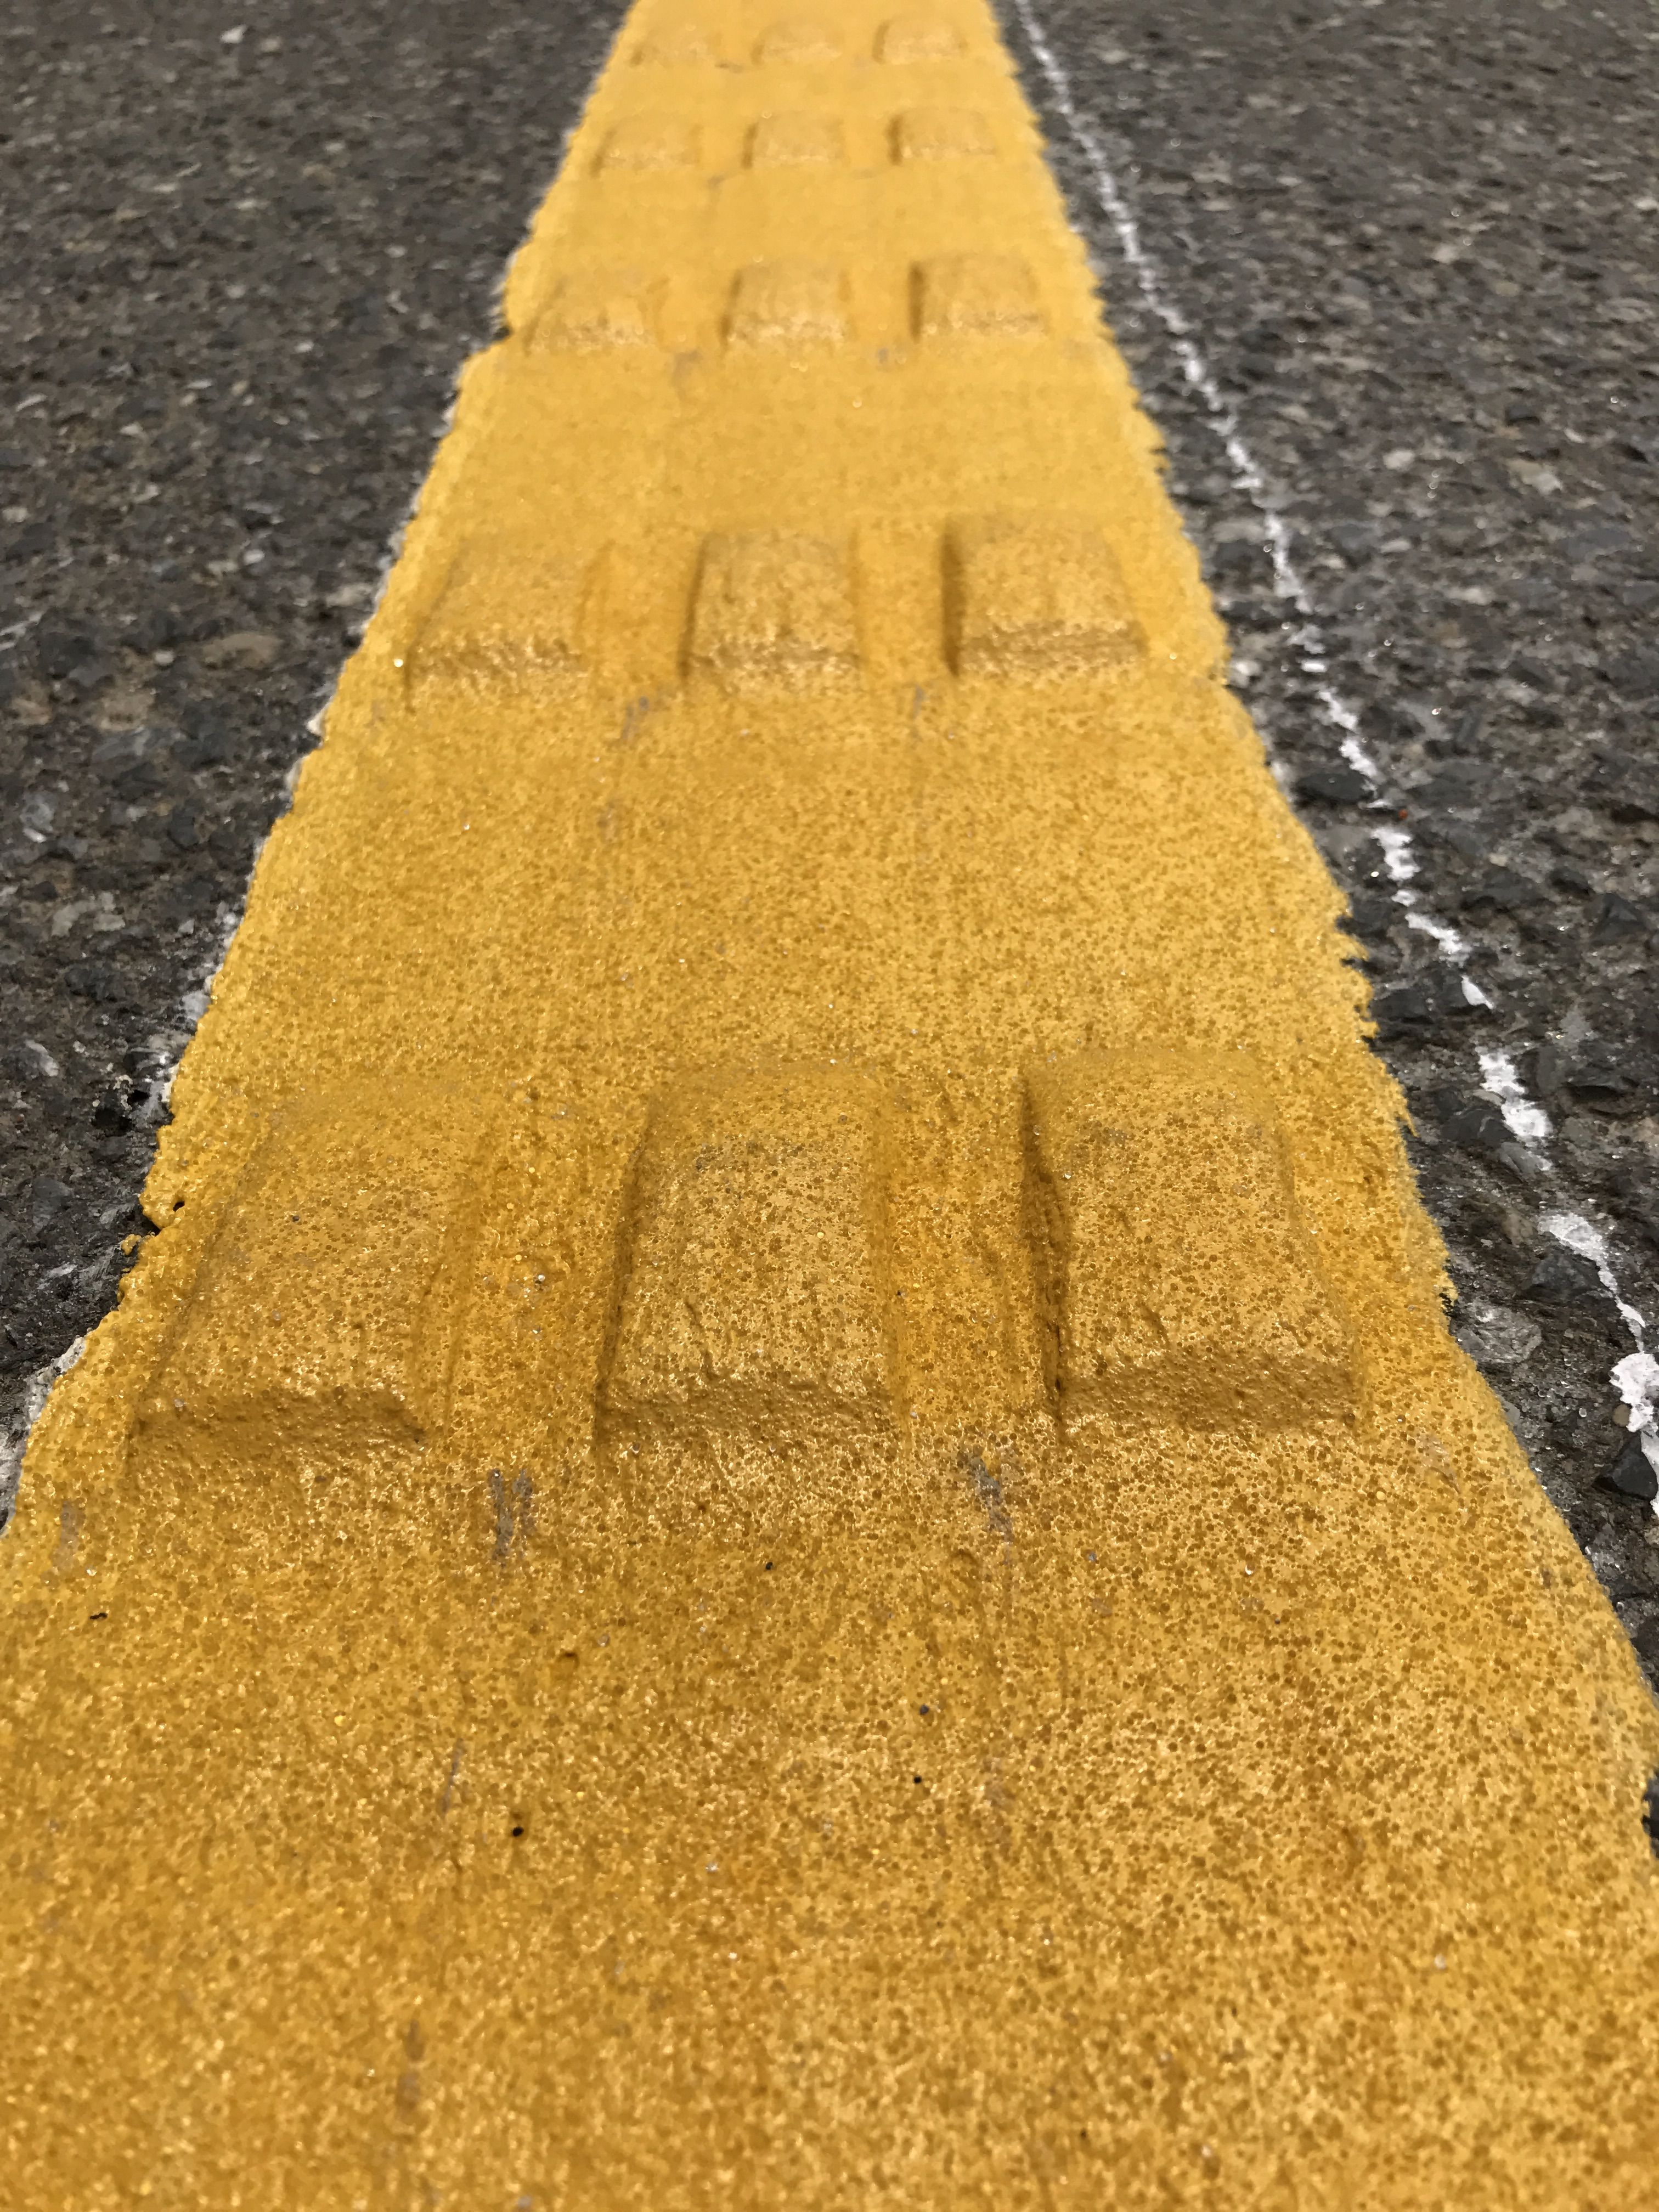 Prefessional convex thermoplastic road marking paint for vibration ...